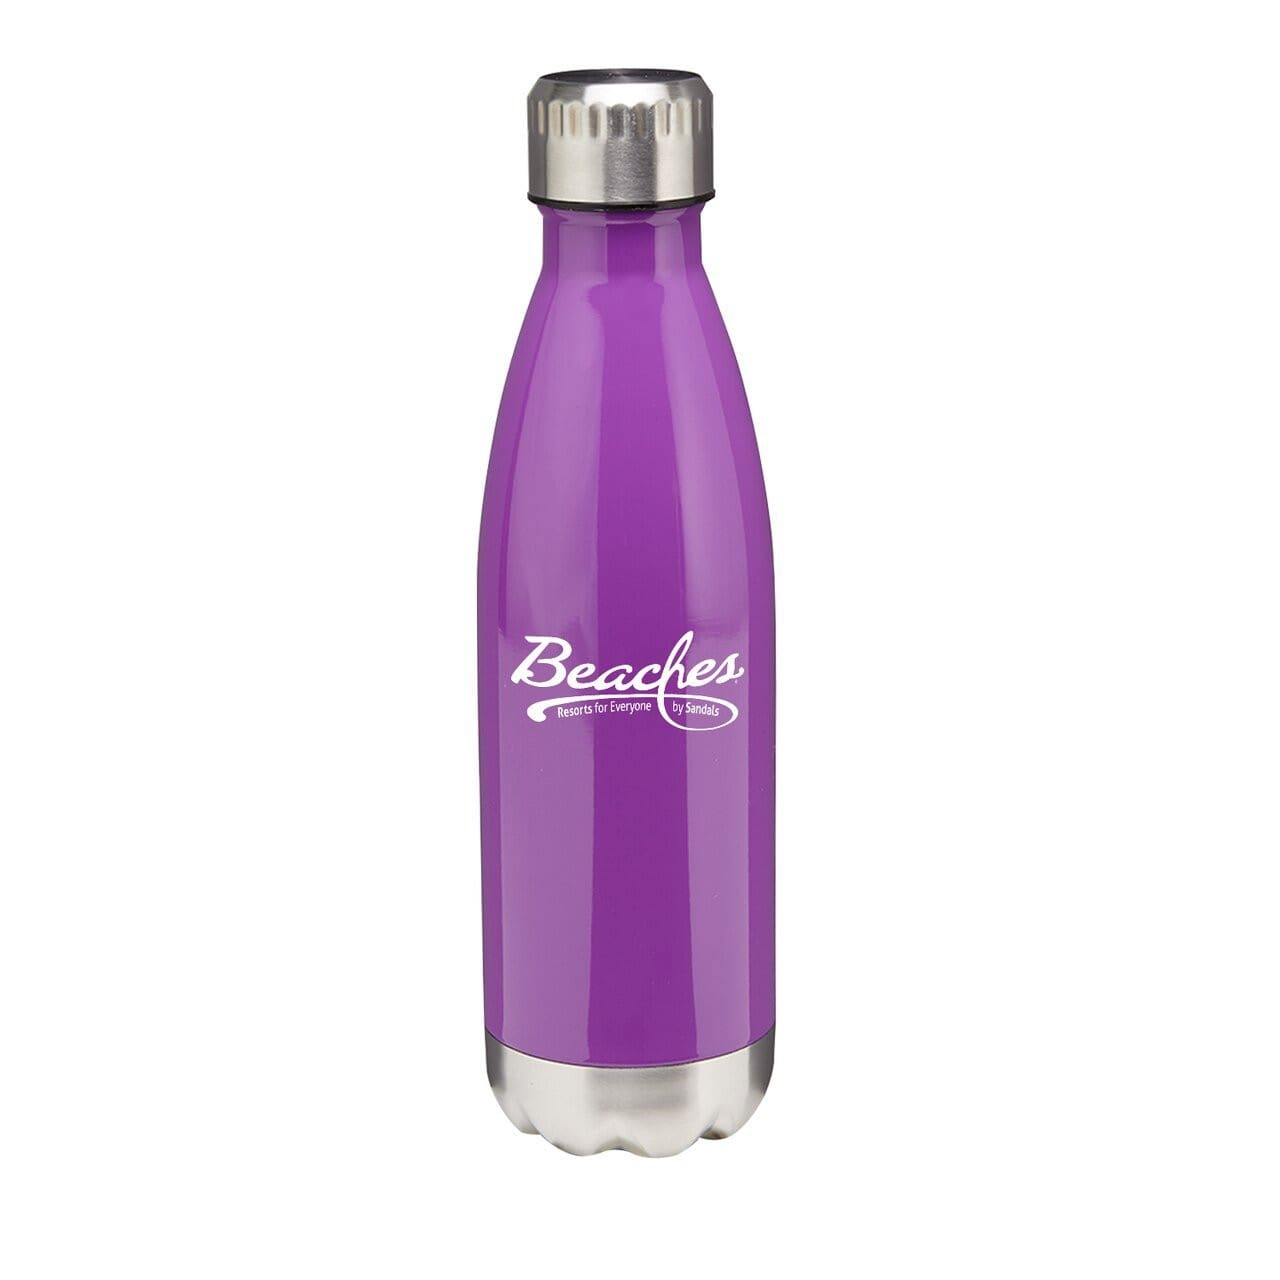 17 oz. Cascade Stainless Steel Bottle - Oasis Promos